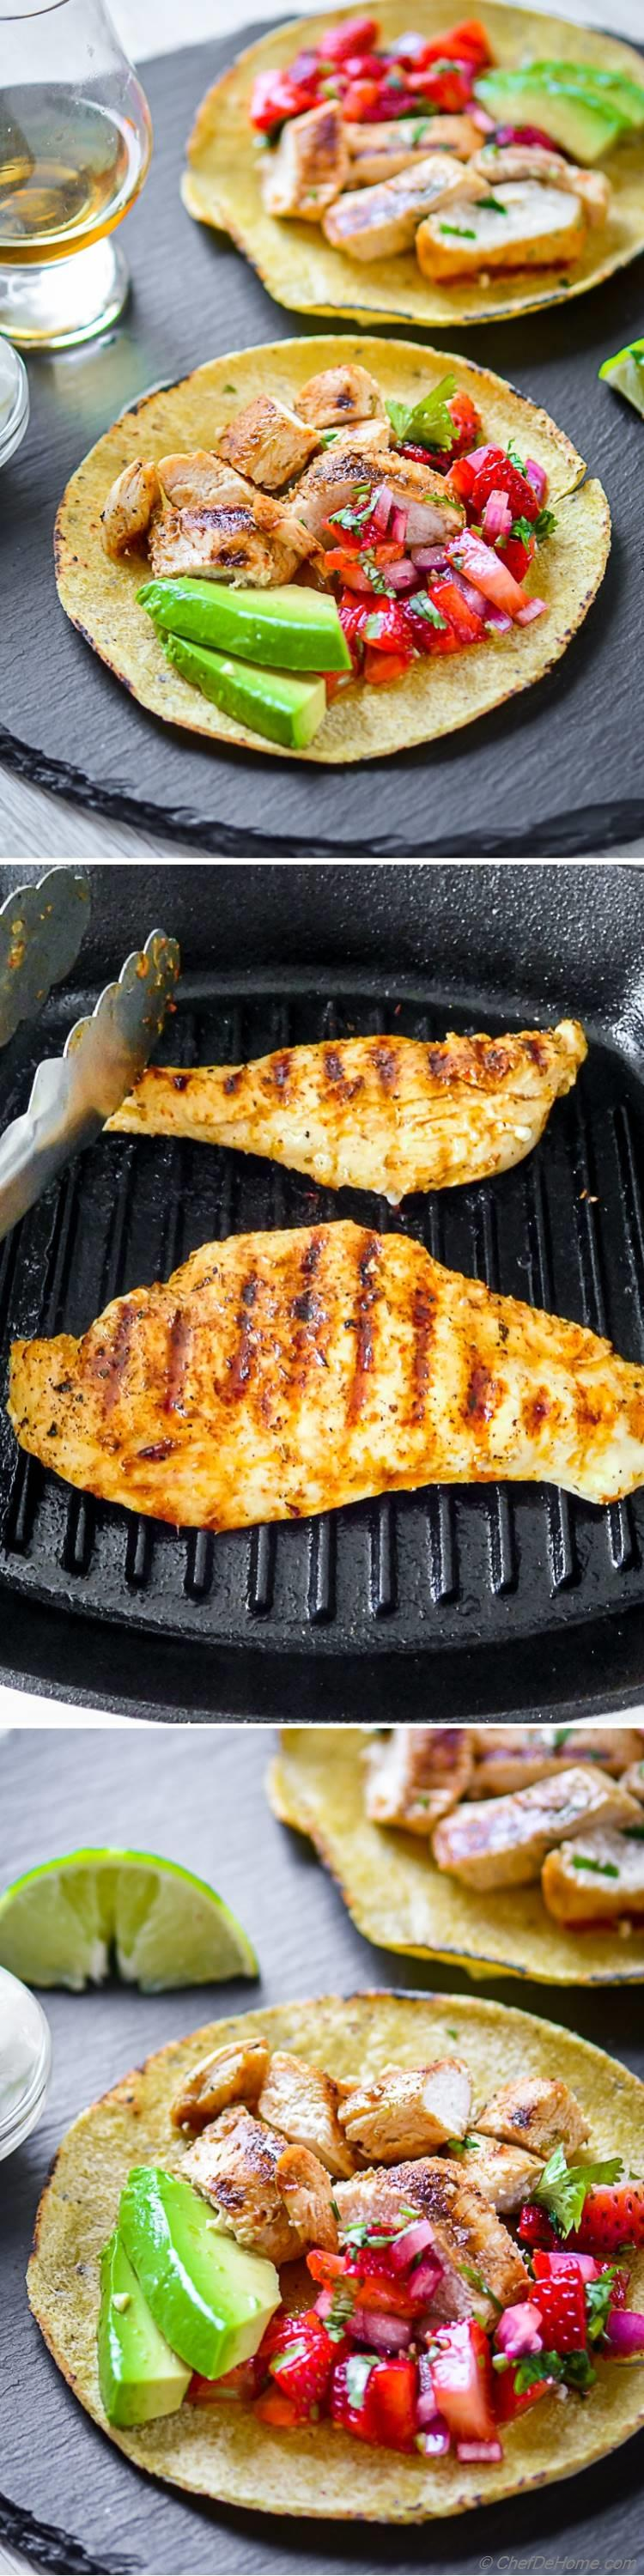 Grilled Chicken Tacos with chicken marinated tequila lime marinade | chefdehome.com